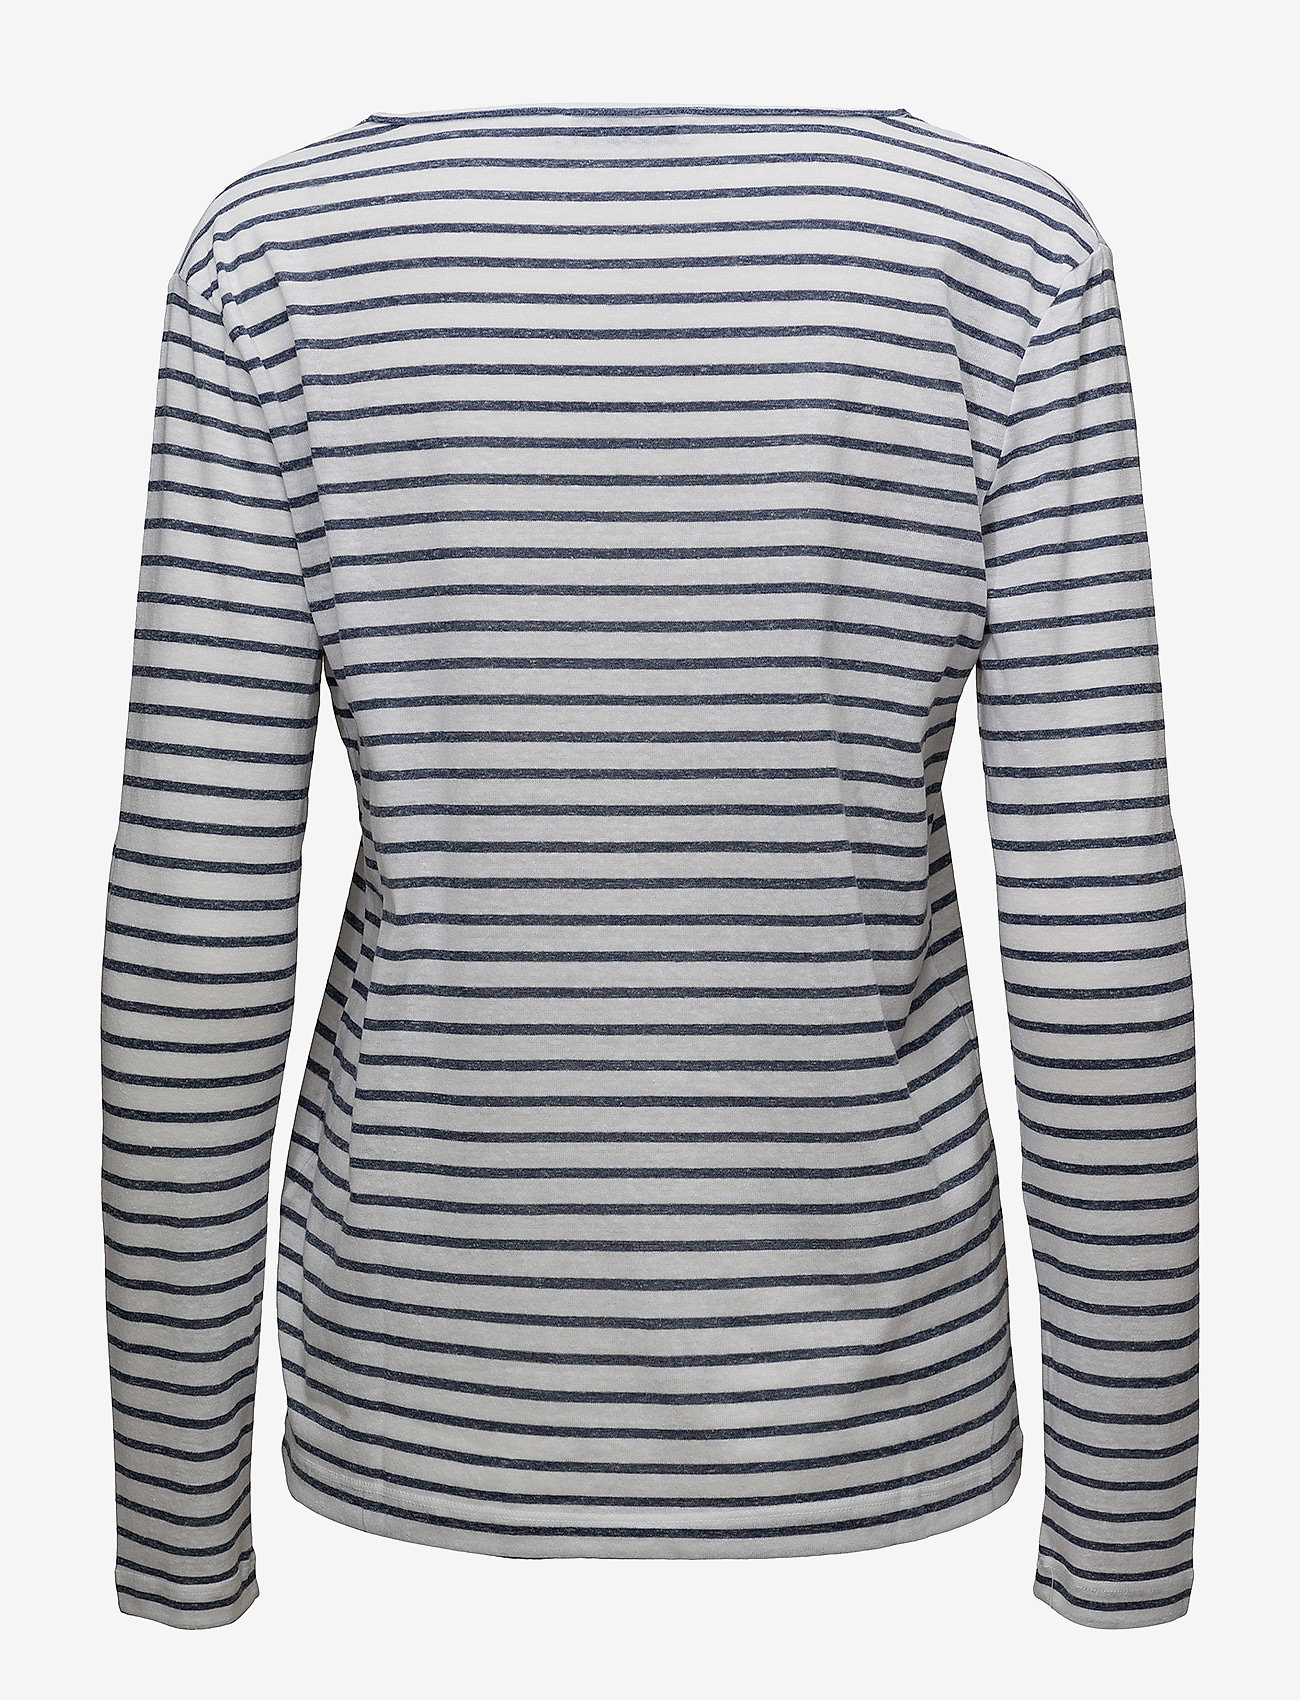 Samsøe Samsøe - Nobel ls stripe 3173 - striped t-shirts - 3173 blue stripe